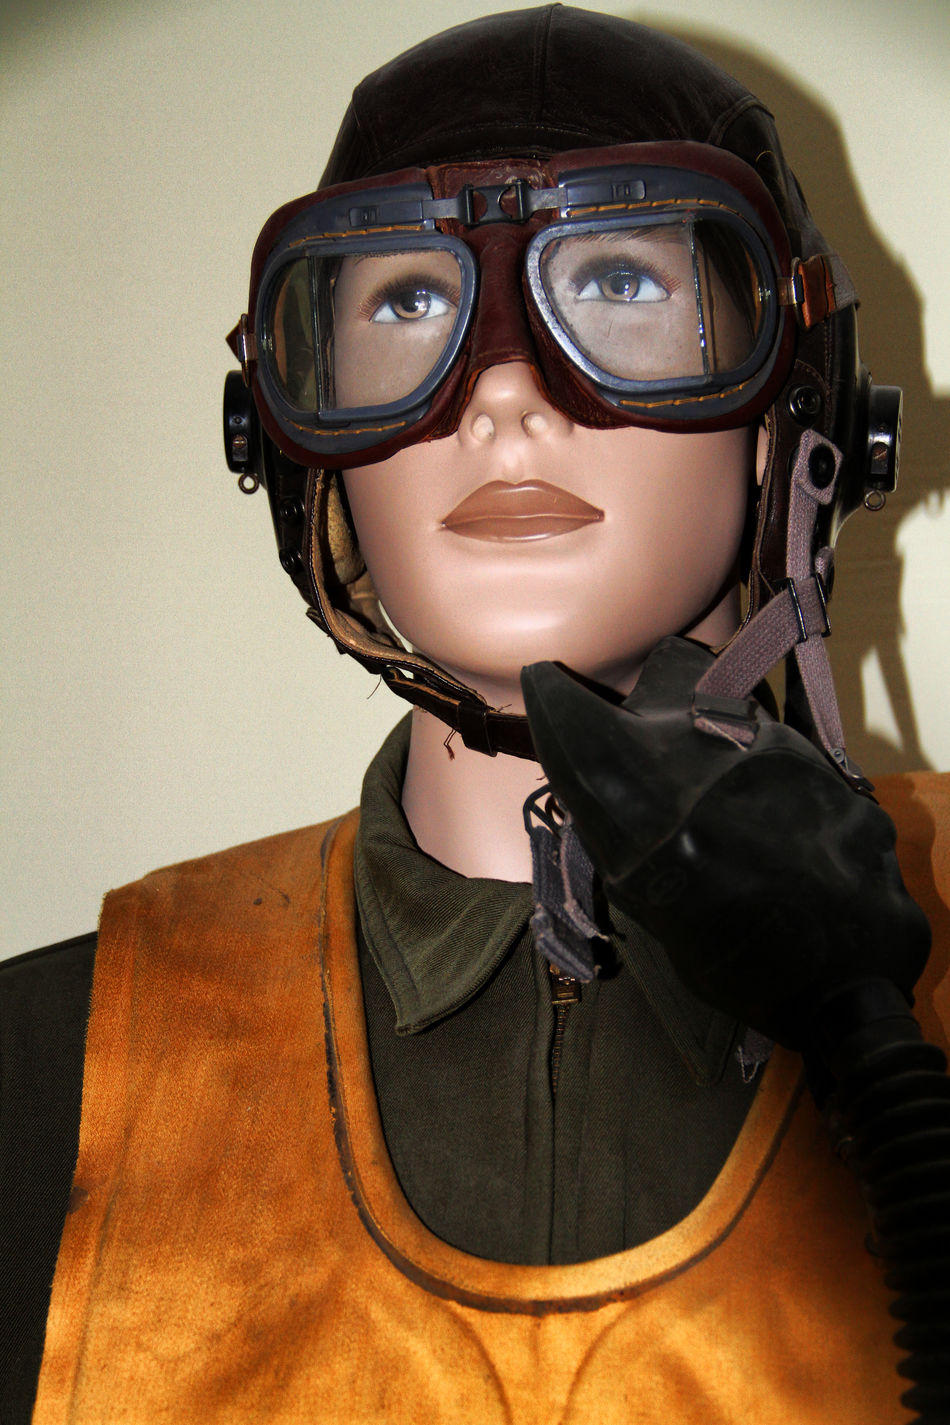 Aviatrix Close-up Dummy Dummy Heads Dummy Photos Fashion Hat Headshot Indoors  Mask - Disguise Person Portrait Sunglasses Wearing